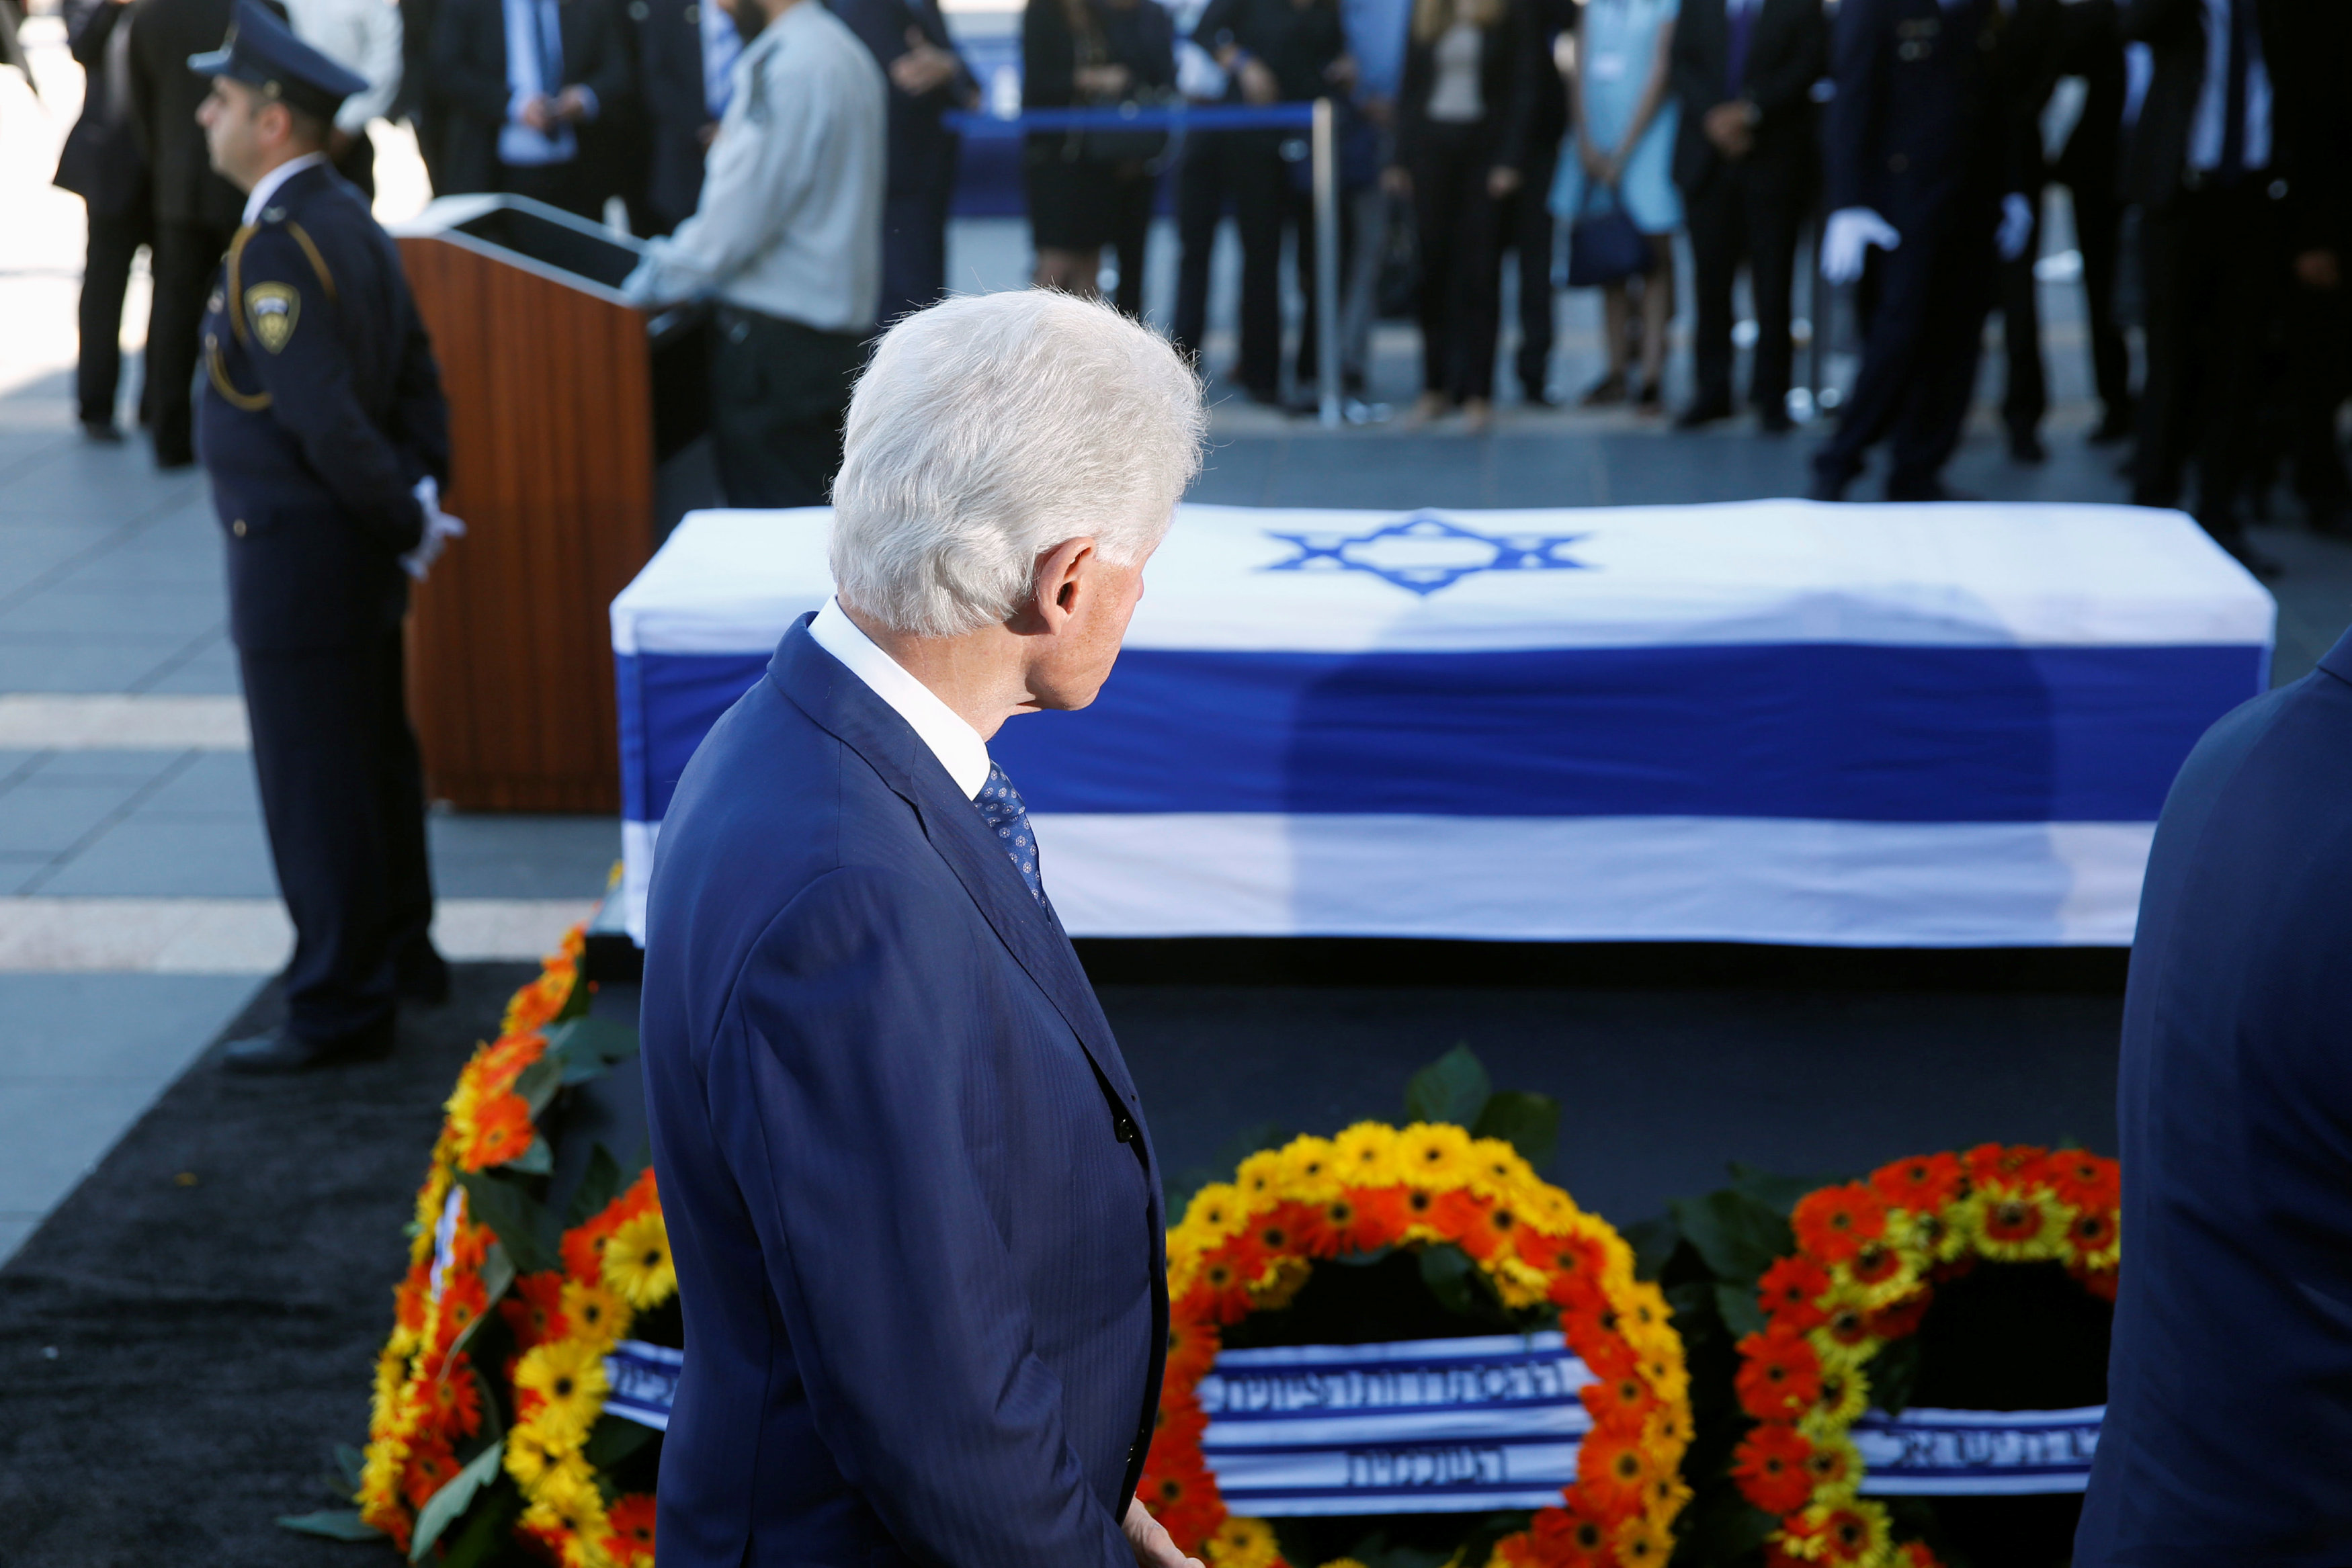 Former U.S. President Bill Clinton stands next to the flag-draped coffin of former Israeli President Shimon Peres, as he lies in state at the Knesset plaza, the Israeli parliament, in Jerusalem